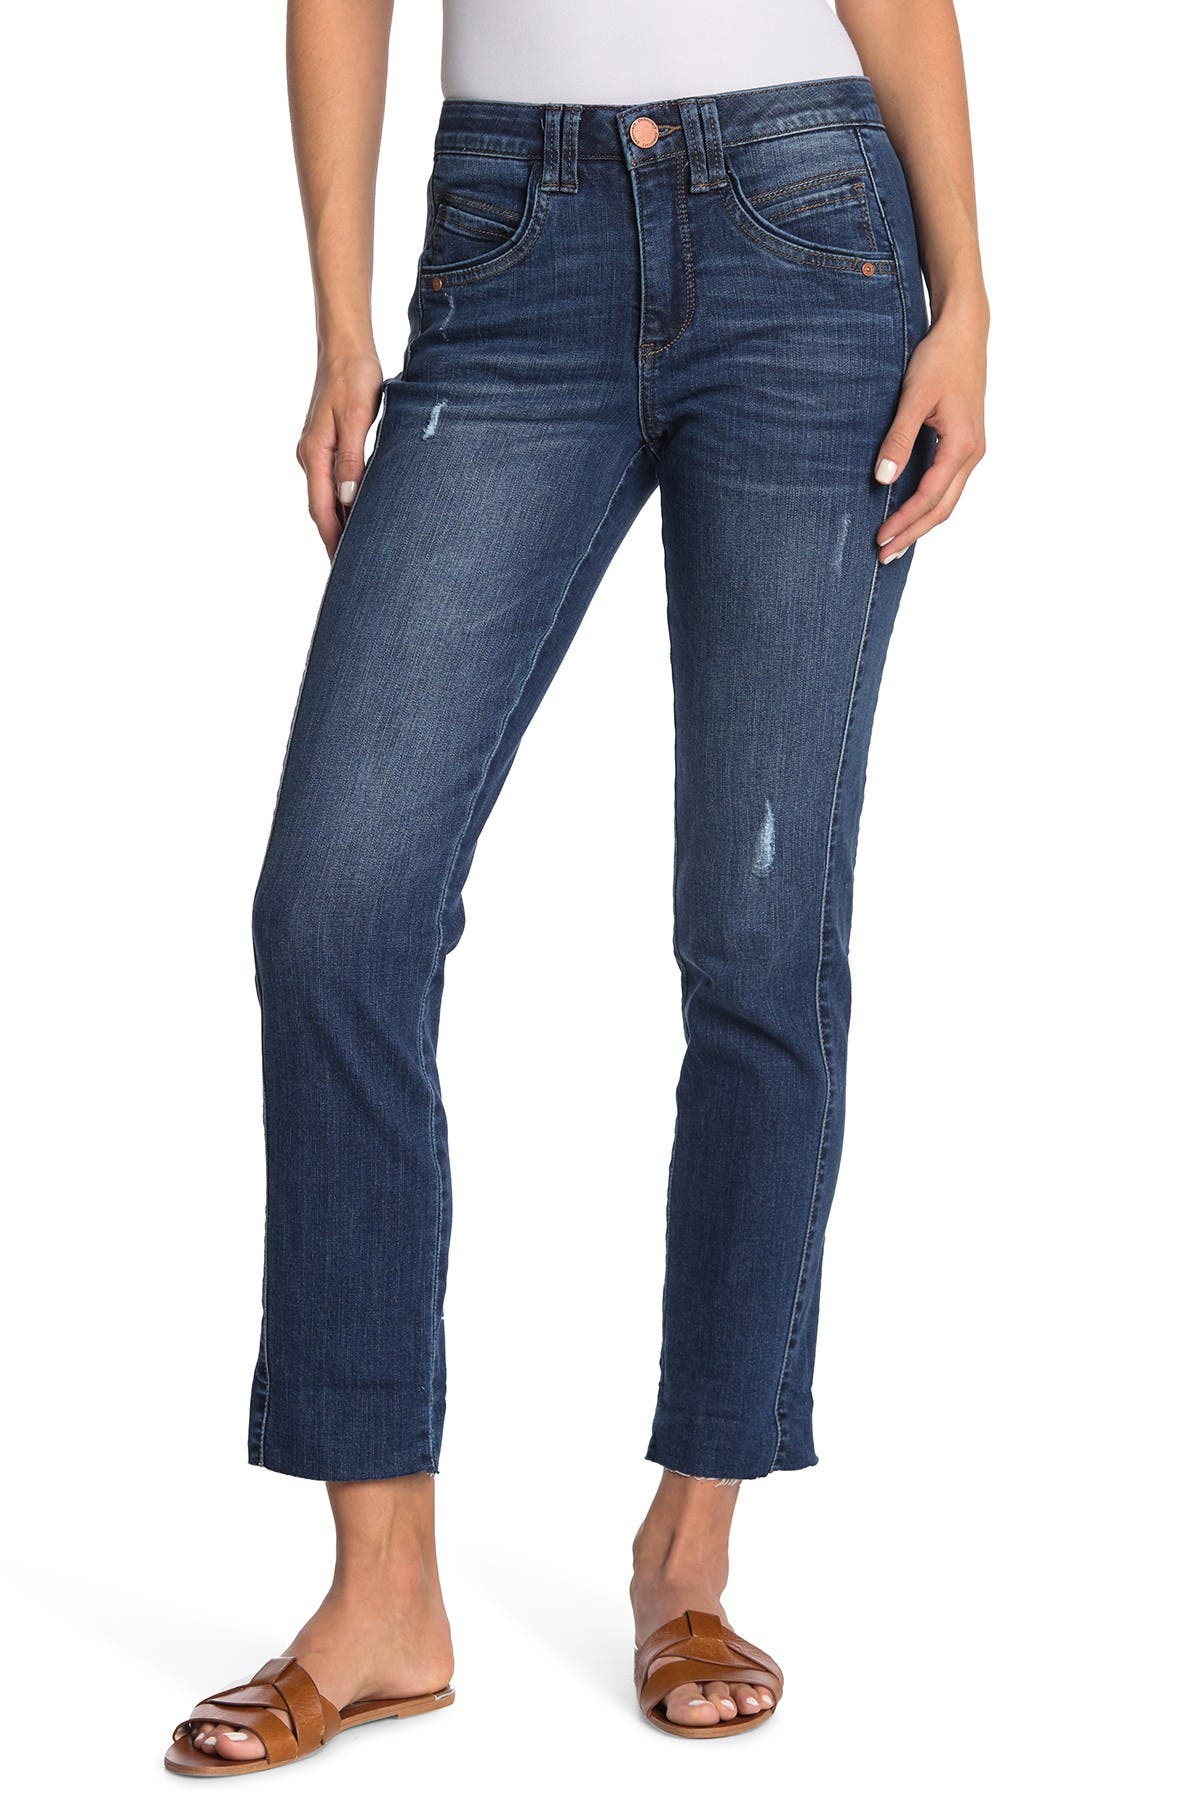 Image of Democracy Ab Tech High Rise Straight Leg Jeans